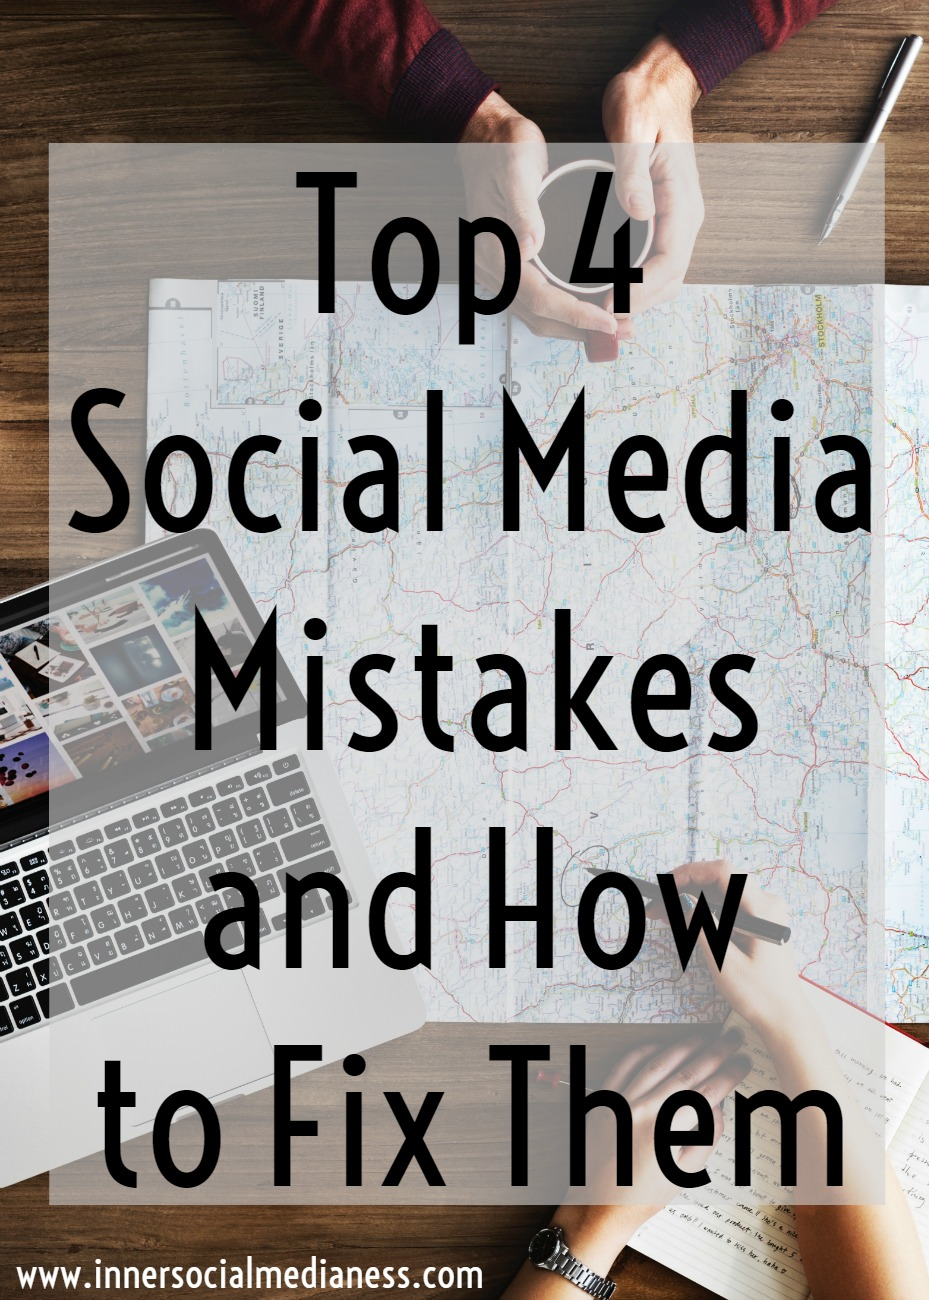 Top 4 Social Media Mistakes and How to Fix Them - Whether you have a social media strategy or just scratched out a marketing plan on a piece of paper, there's a good chance that you're making these social media mistakes that's affecting how you're connecting to customers online.